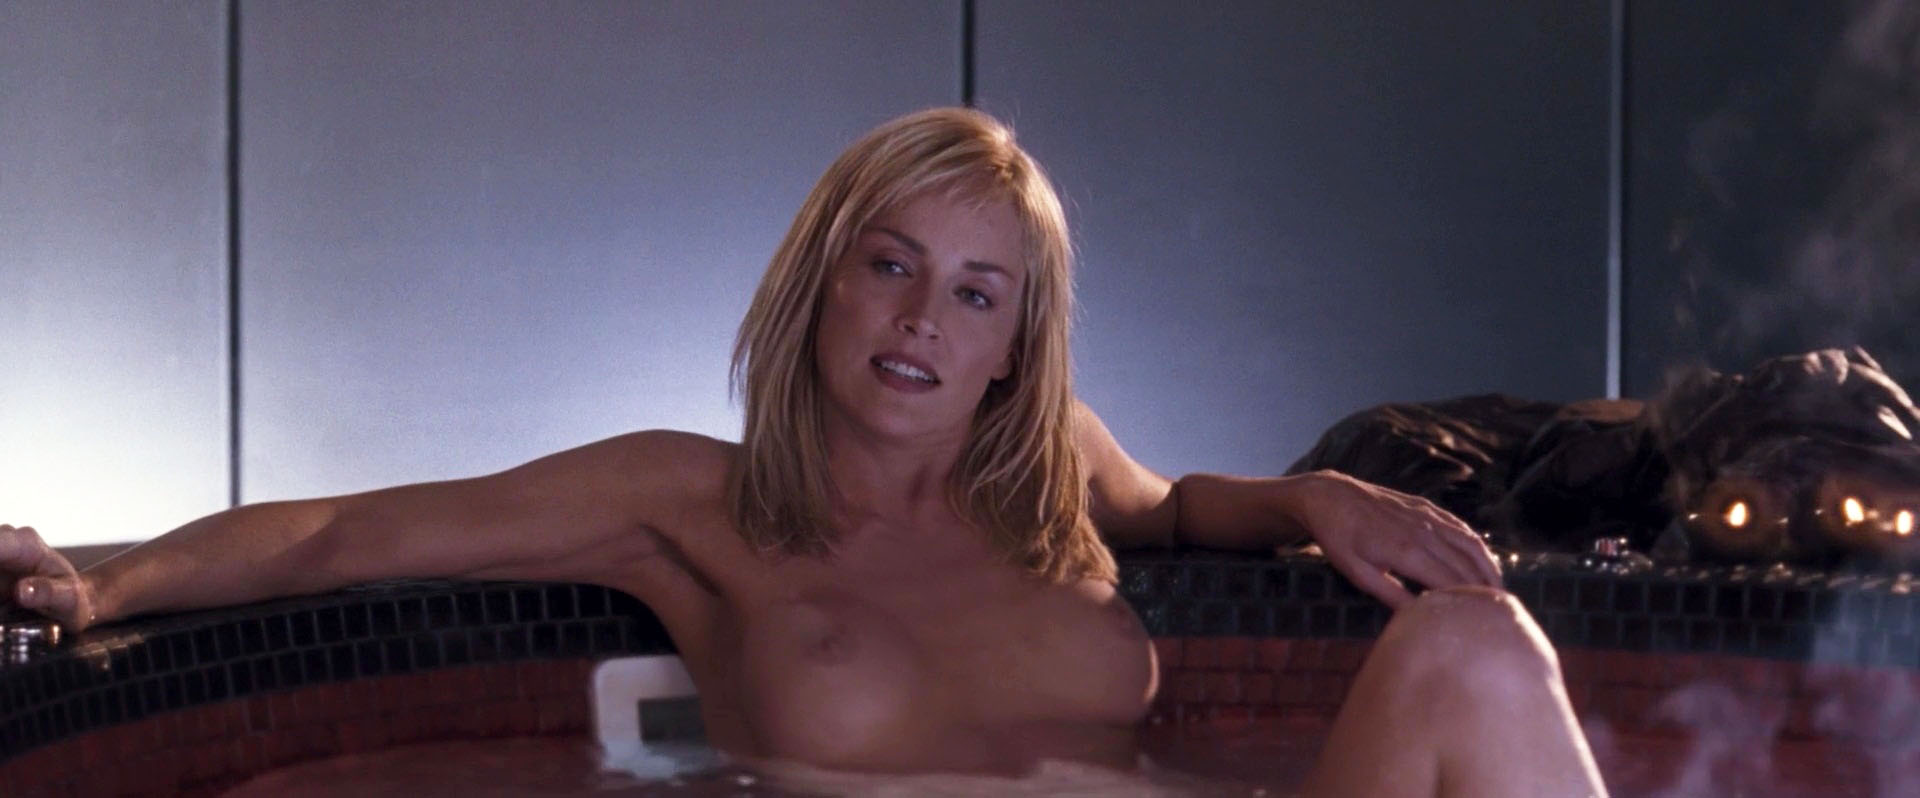 Sharon stone basic instinct 2 sex scene